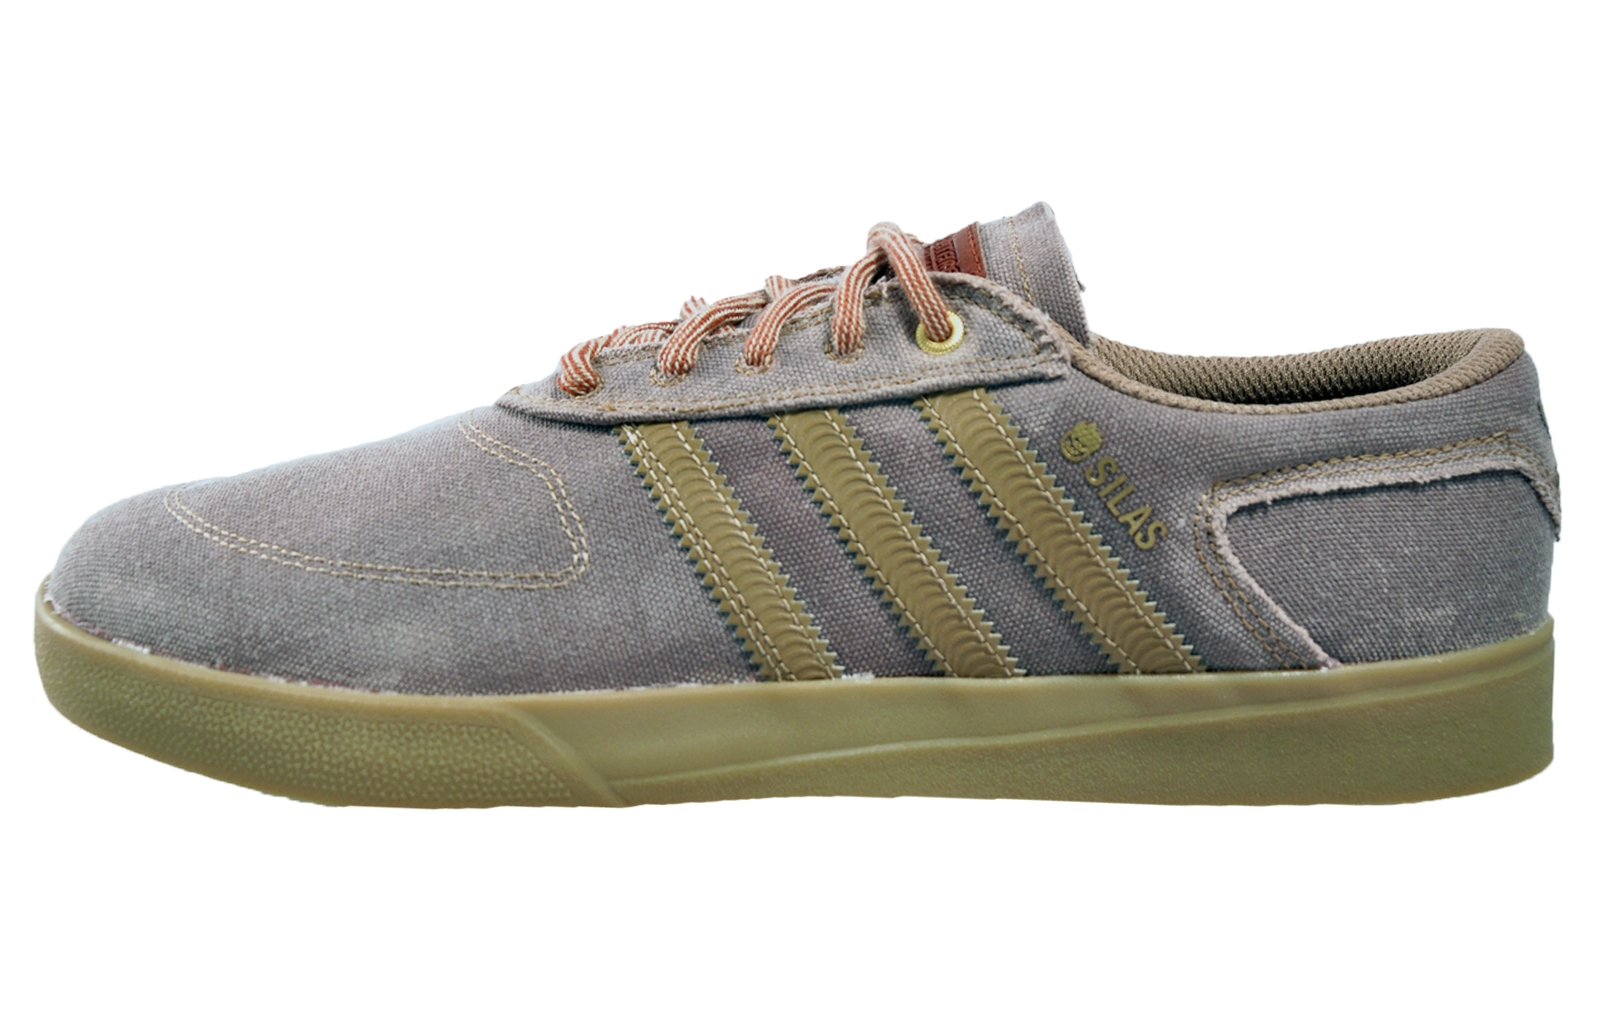 Adidas Spitfire Silas Shoes